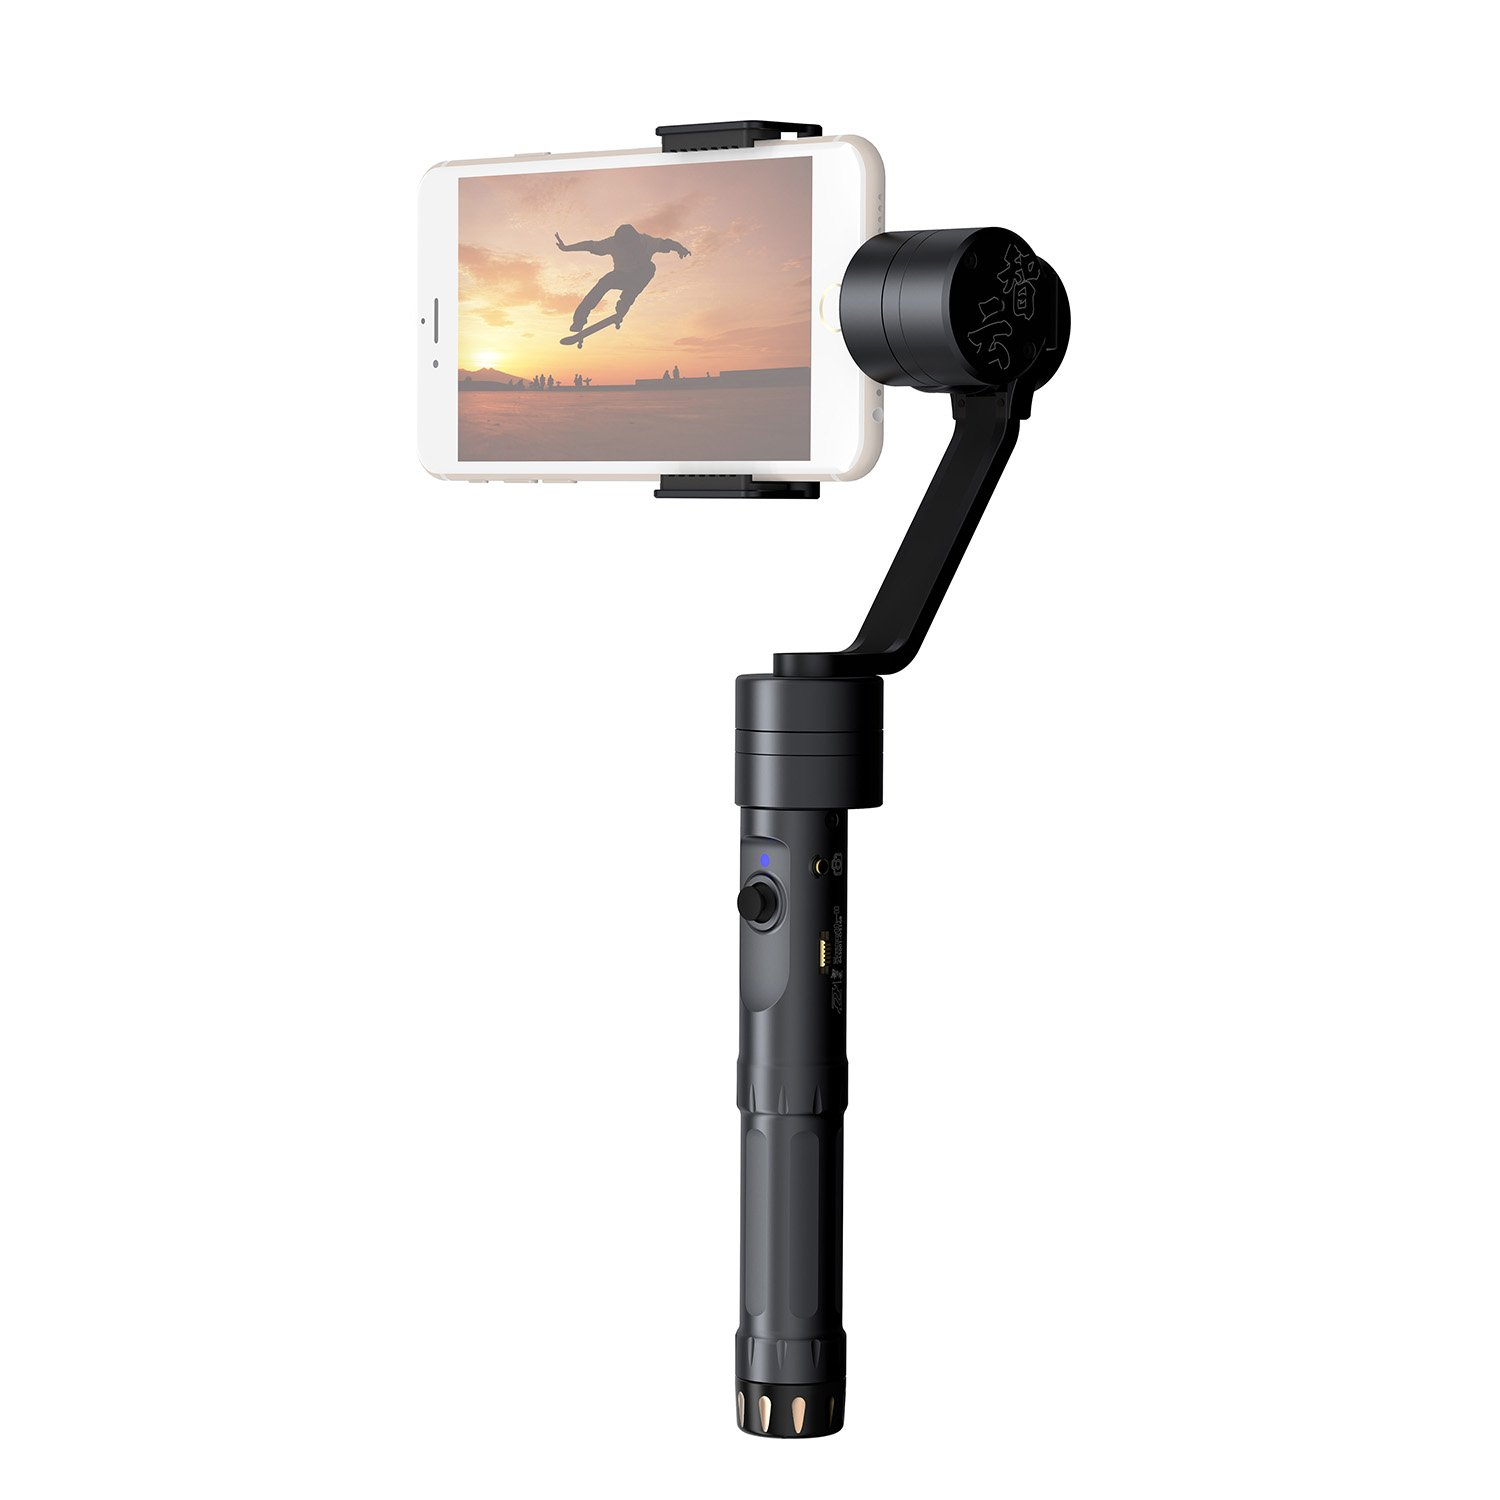 Zhiyun - Z1-Smooth-II 2 3 Axis Brushless Handheld Camera Gimbal Stabilizer APP Bluetooth Control Camera Focus Function for Smartphone Apple iPhone Samsung Galaxy S7 S6 edge IOS Android by zhi yun